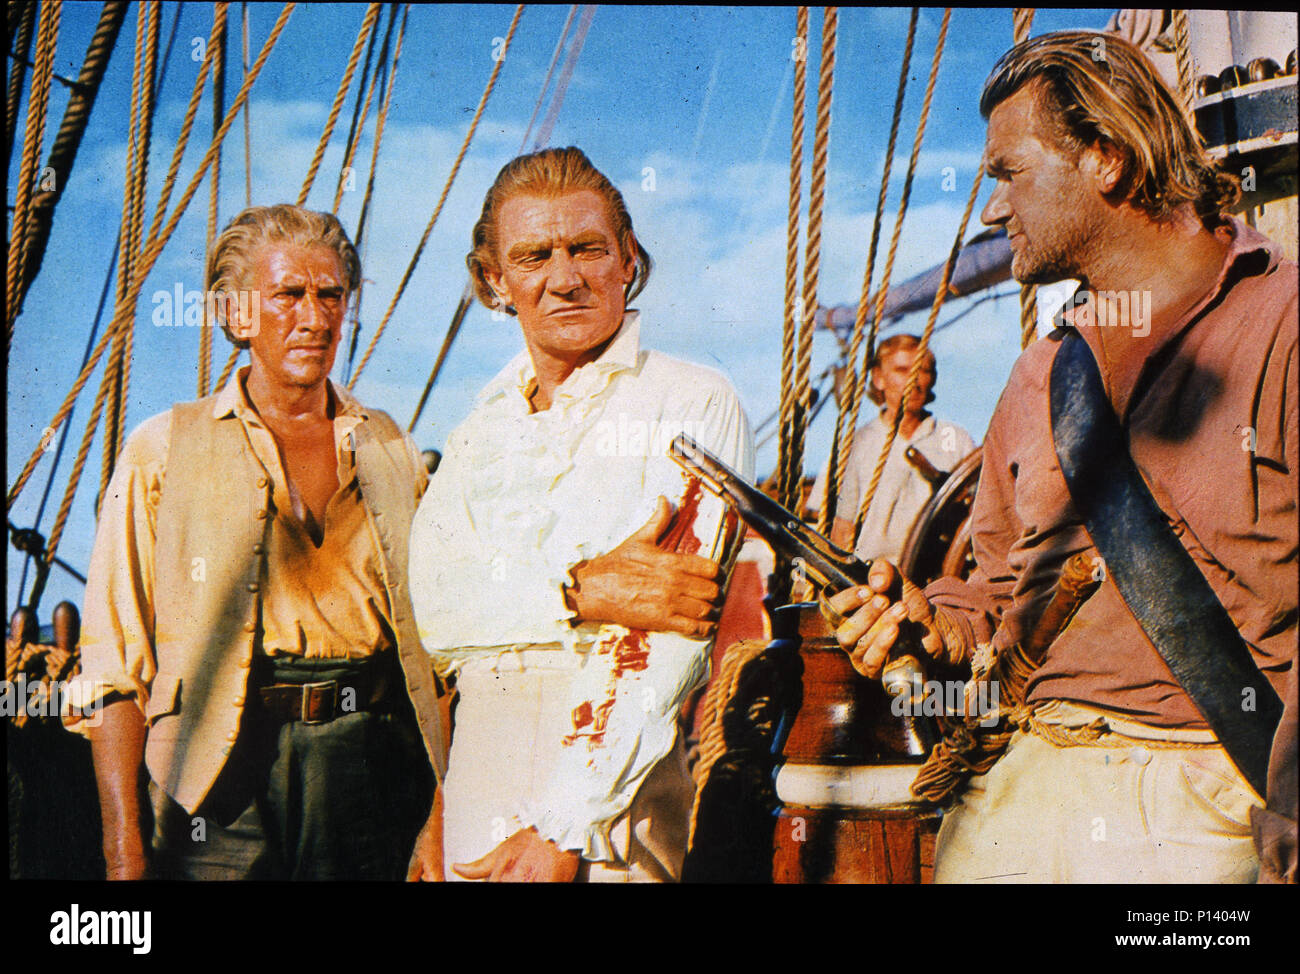 MUTINY ON THE BOUNTY 1962 MGM film with Trevor Howard as Capt William Bligh - Stock Image